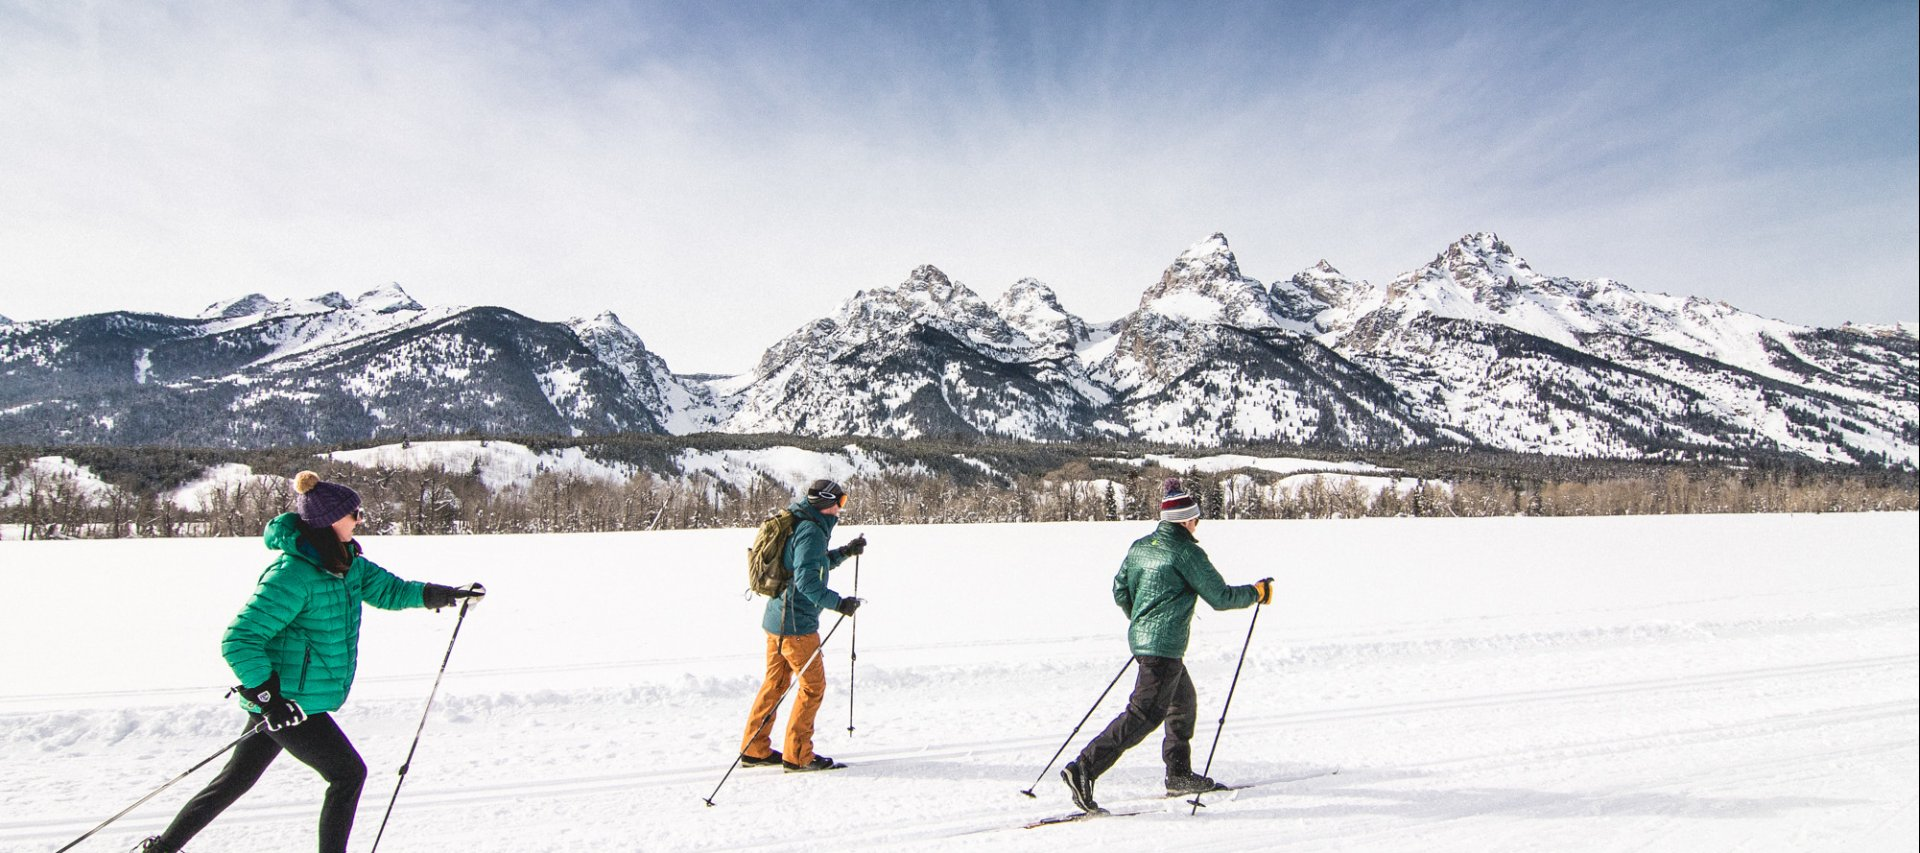 Winter activities for you and your family